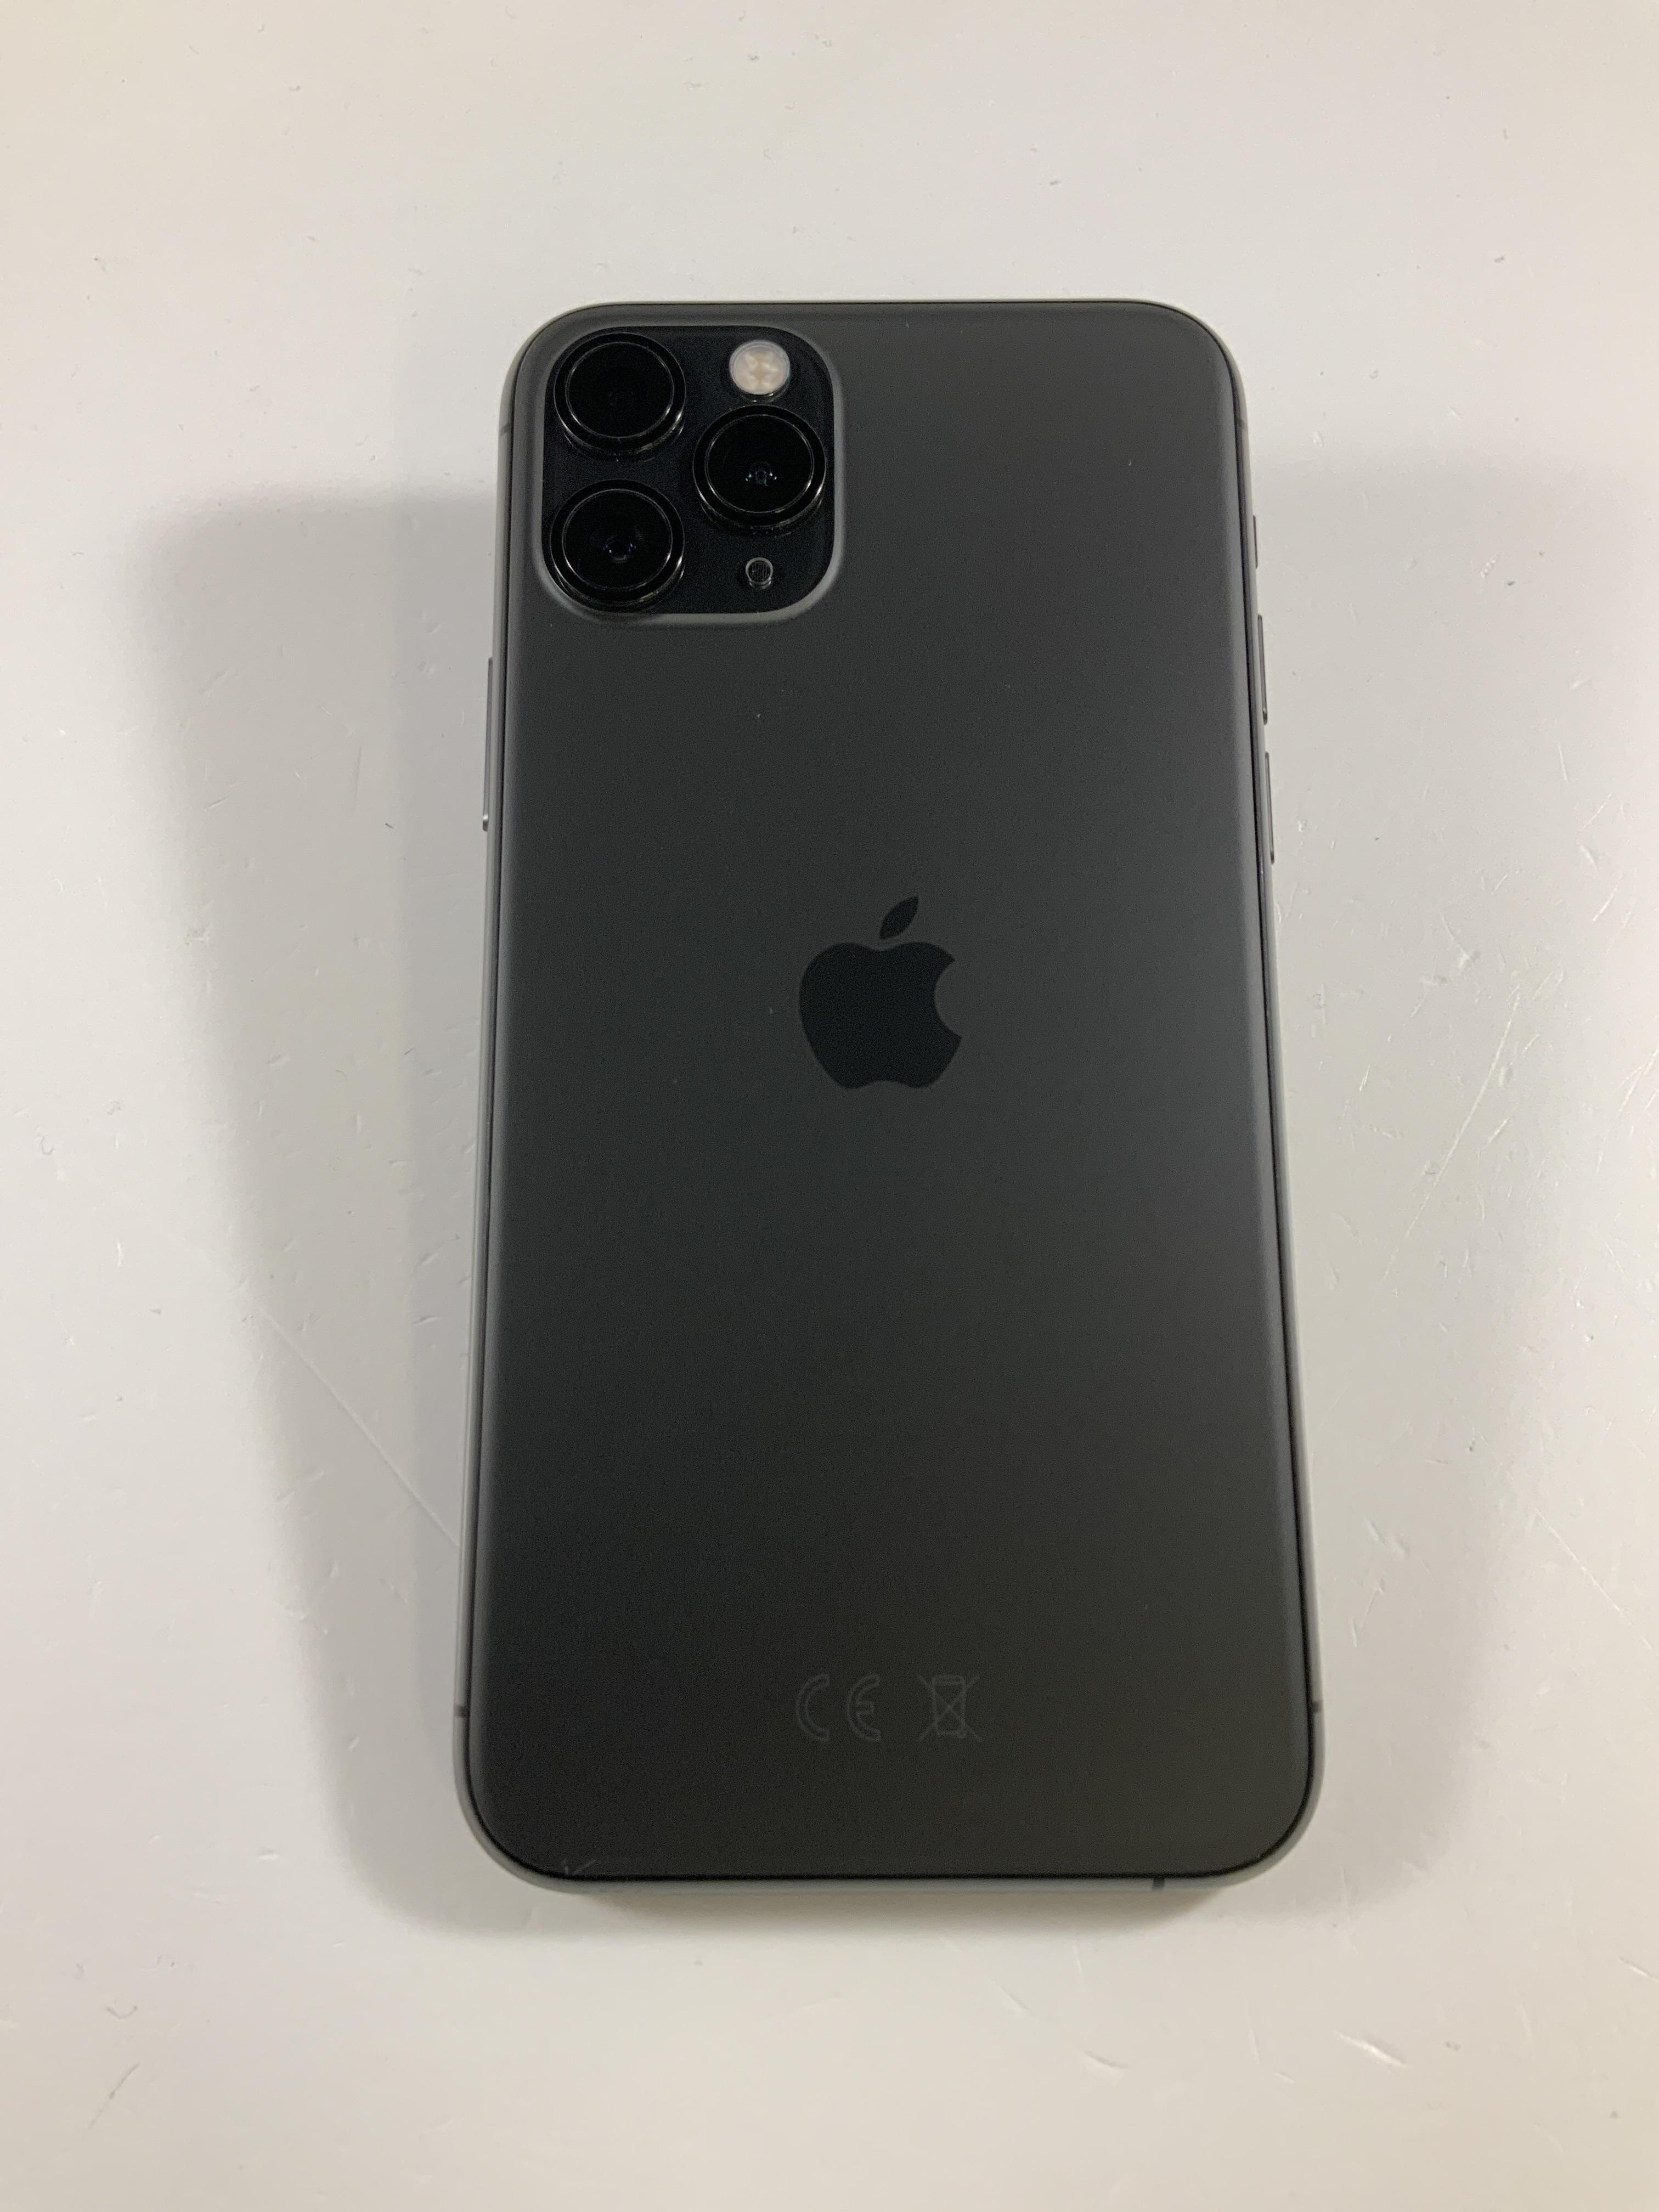 iPhone 11 Pro 64GB, 64GB, Space Gray, immagine 3